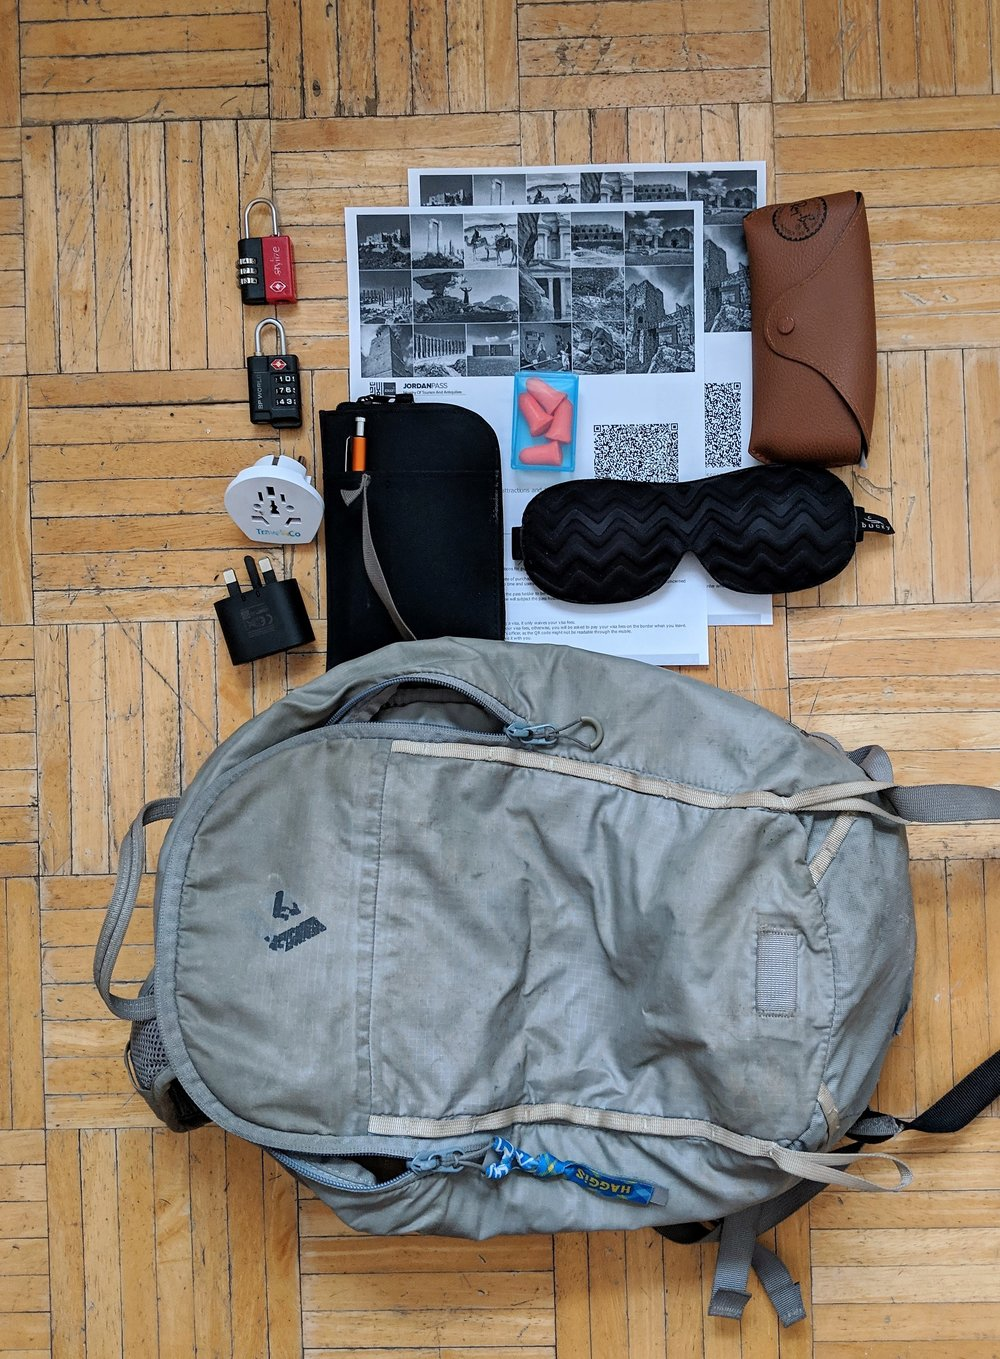 Small backpack. - I carry all my essentials in a small daypack. Here, I have packed my partner and I's Jordan passes, my sunglasses, passport, 2 small locks, plug converts, and earplugs and an eyemask.